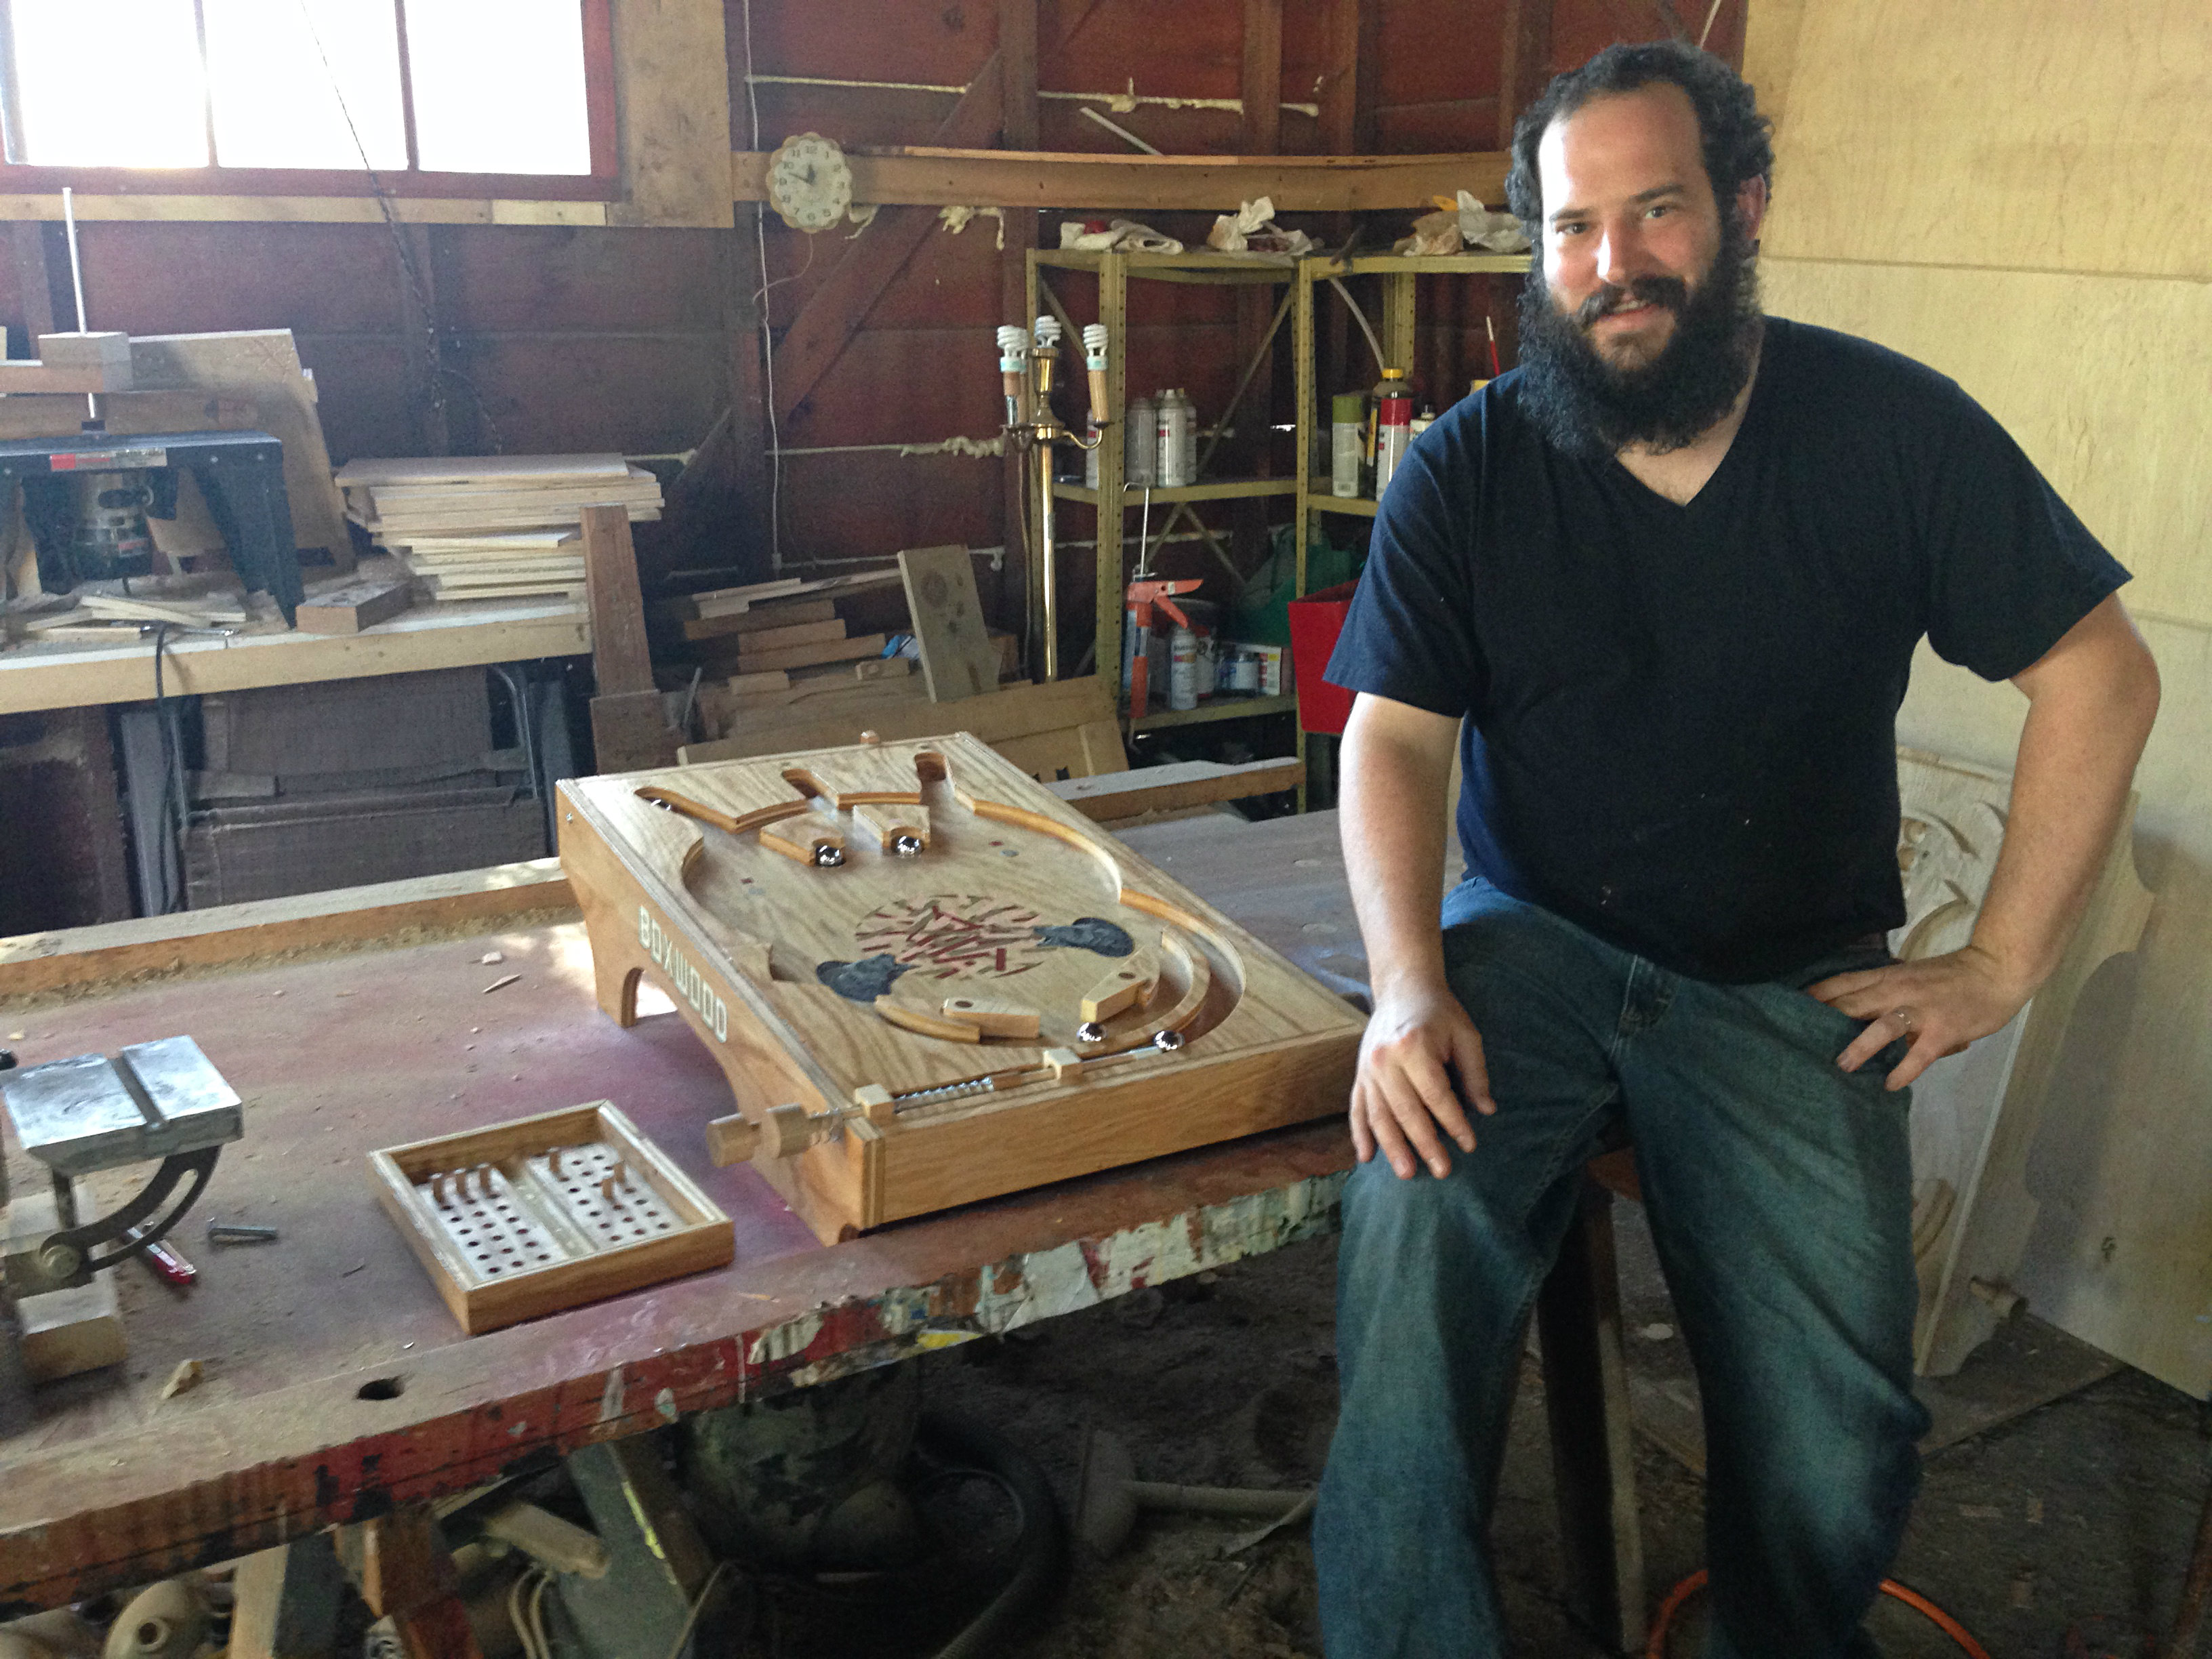 Photo: Artist William Manke with a Boxwood pinball machine